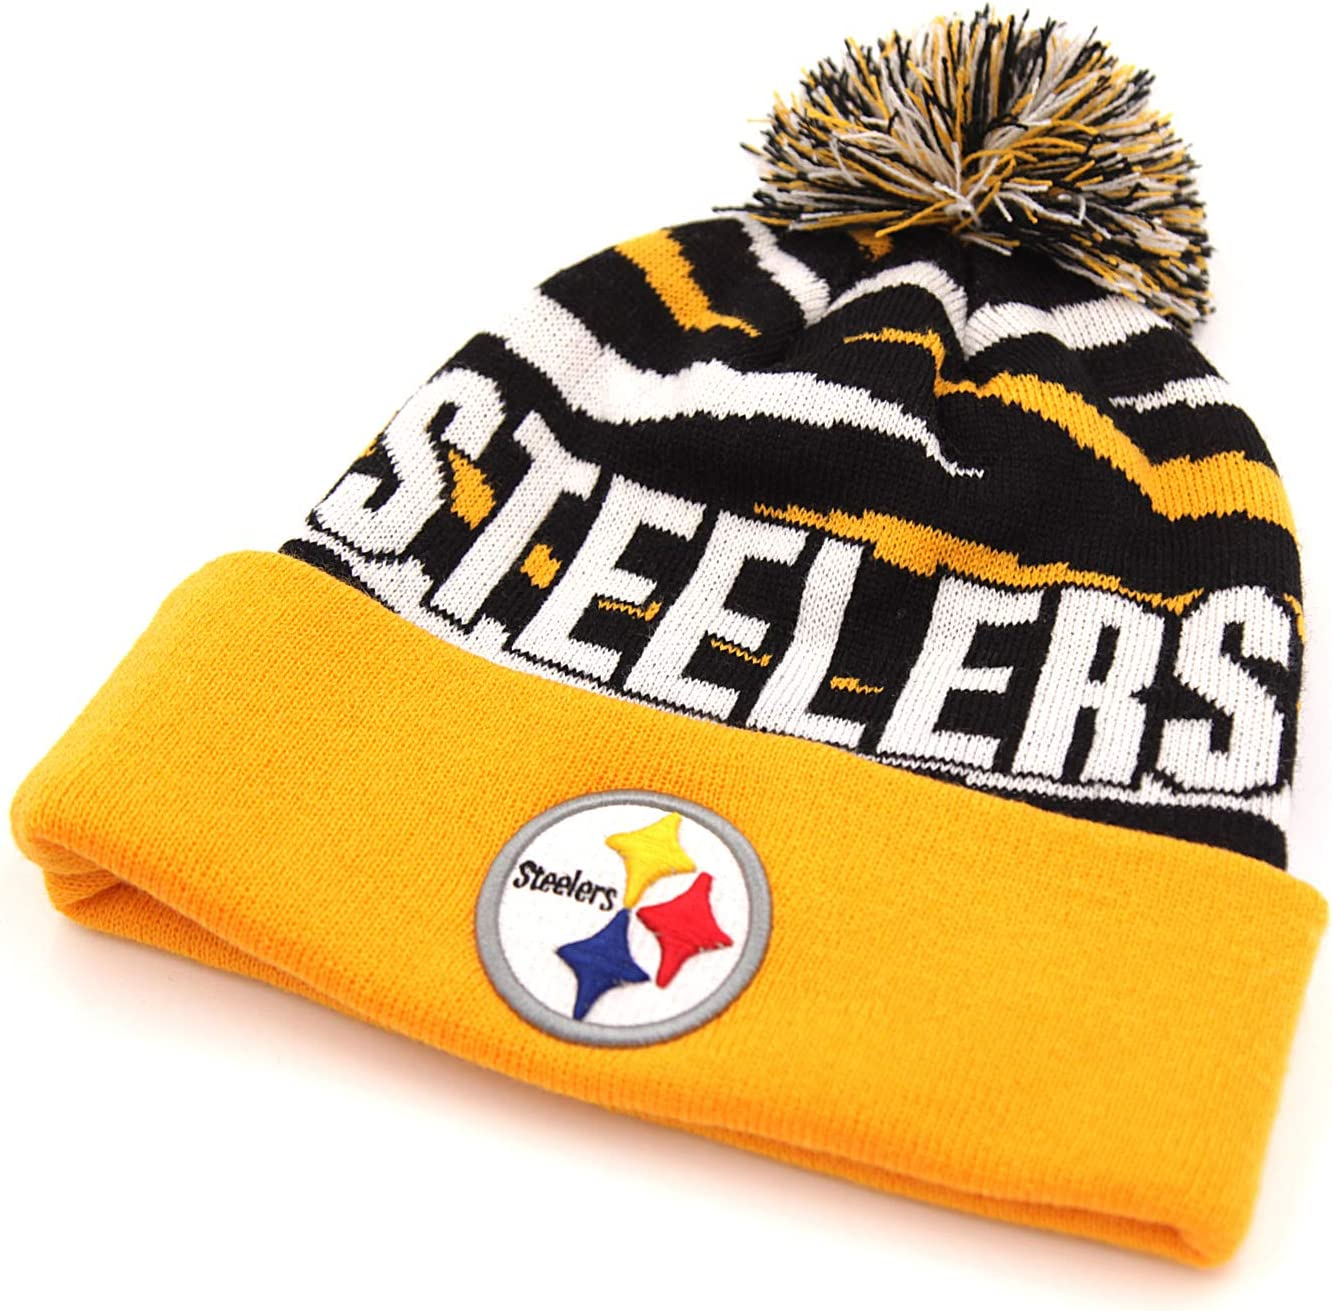 ILAVSHON American Football Team Logo Beanie Knit Cap with Pom for 2020 Raised Cuff Knit Sport Fans Winter Beanie Hat